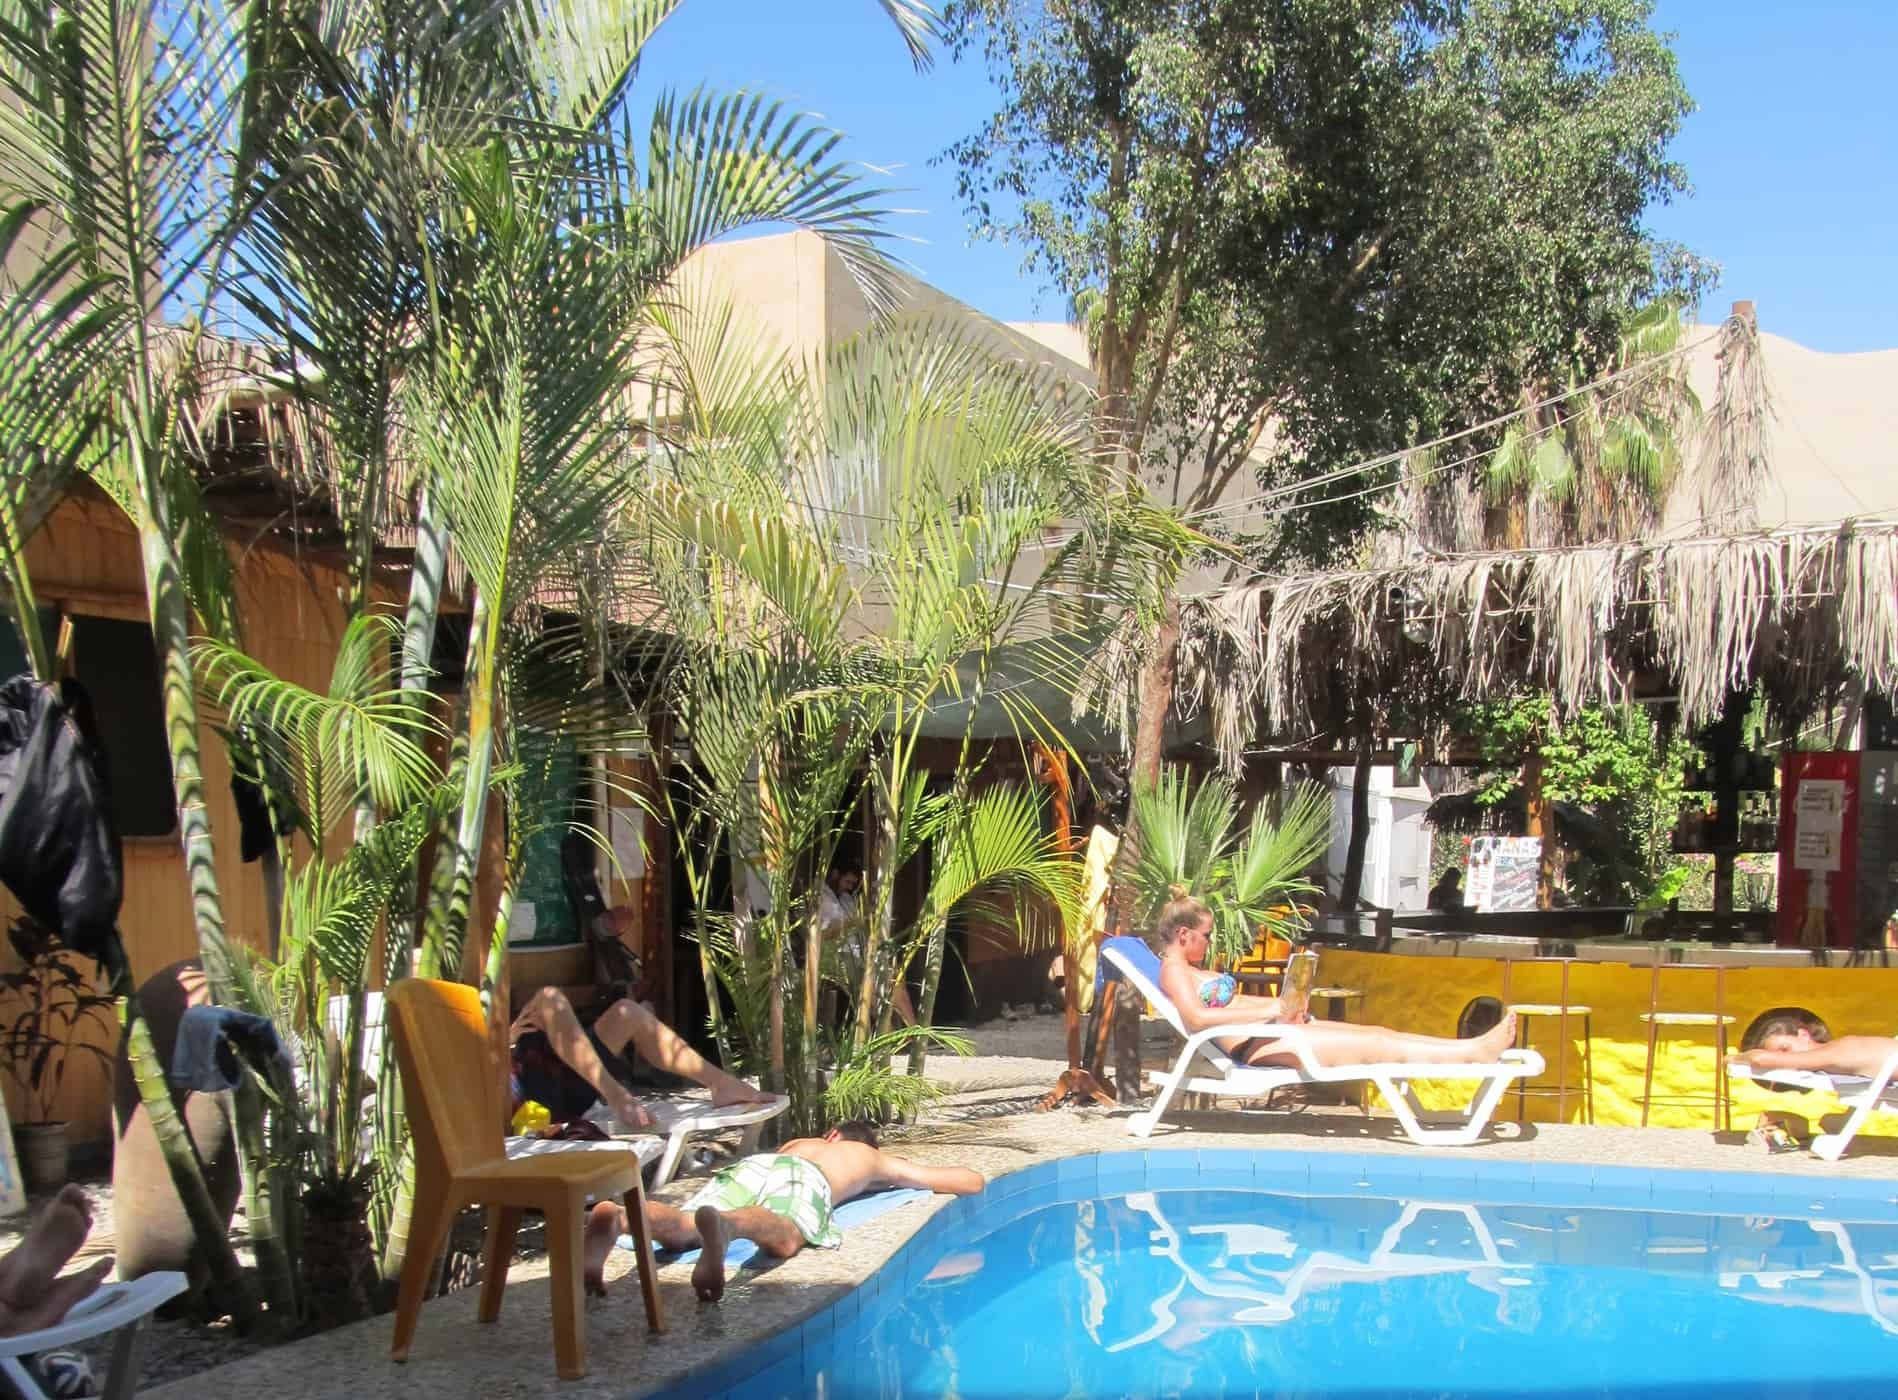 Relaxing by the pool at Bananas Hostel Huacachina